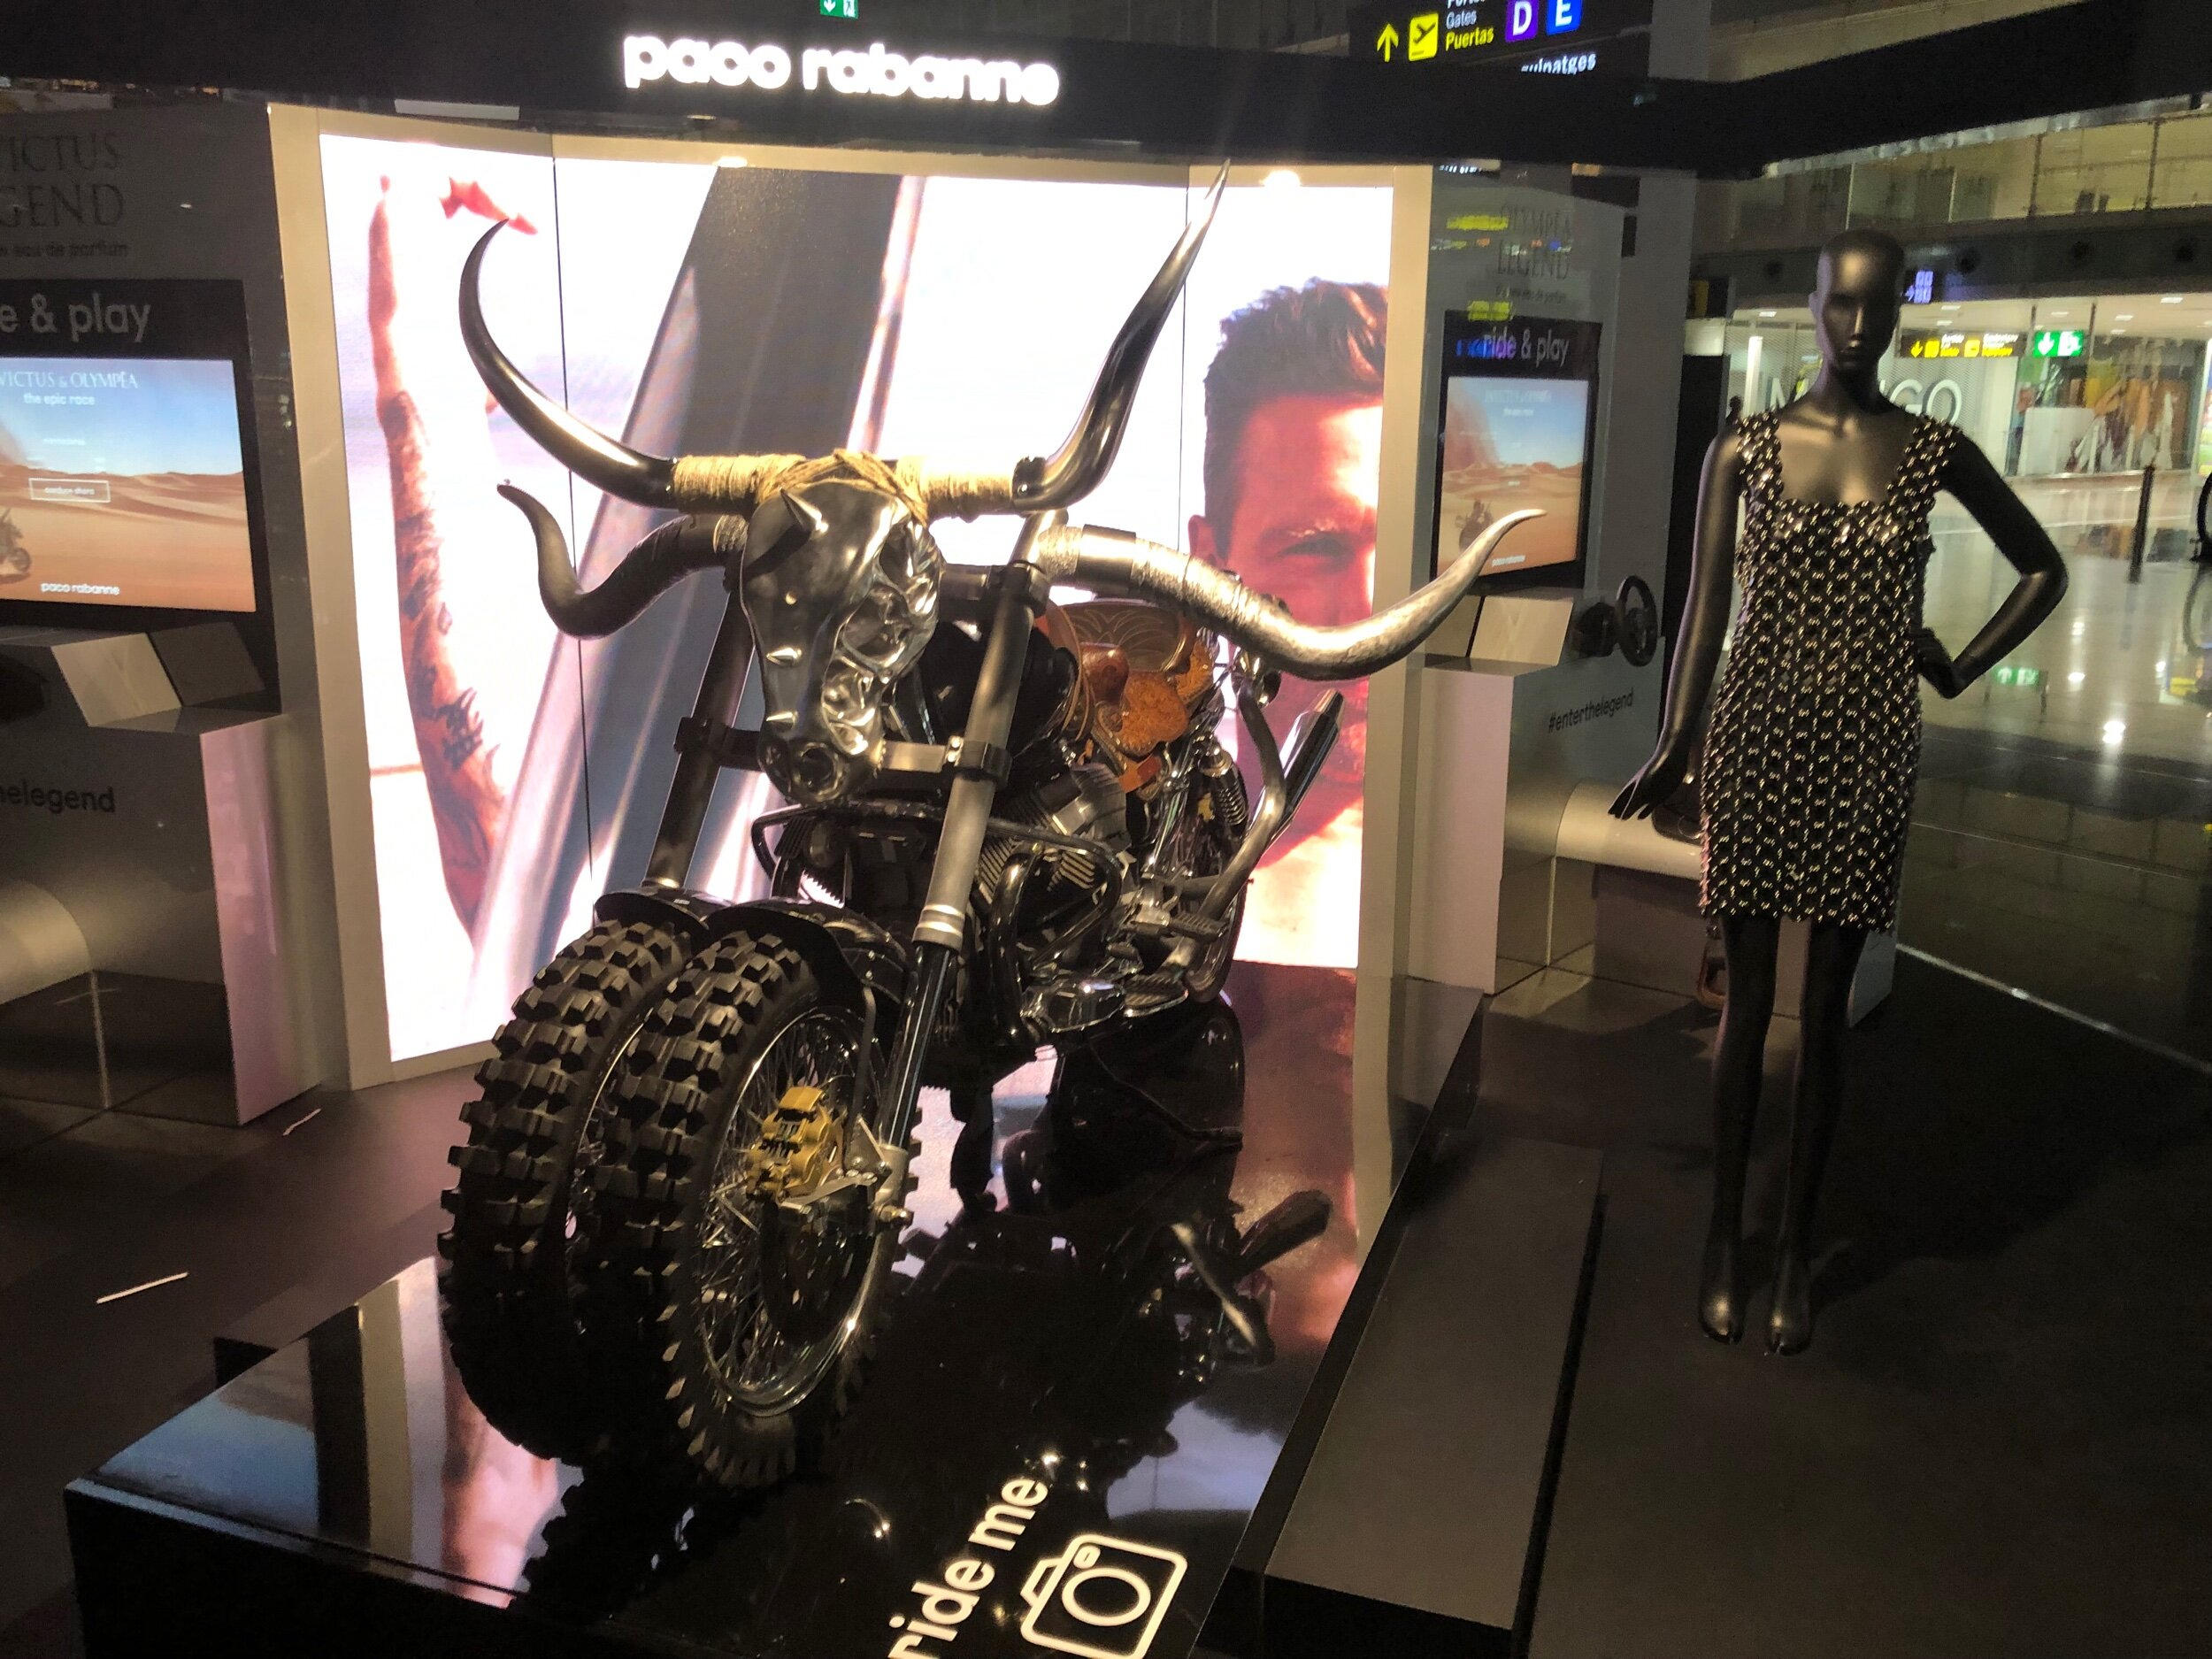 Stumbled upon quite the bike for a Paco Rabanne fragrance promo during my wander